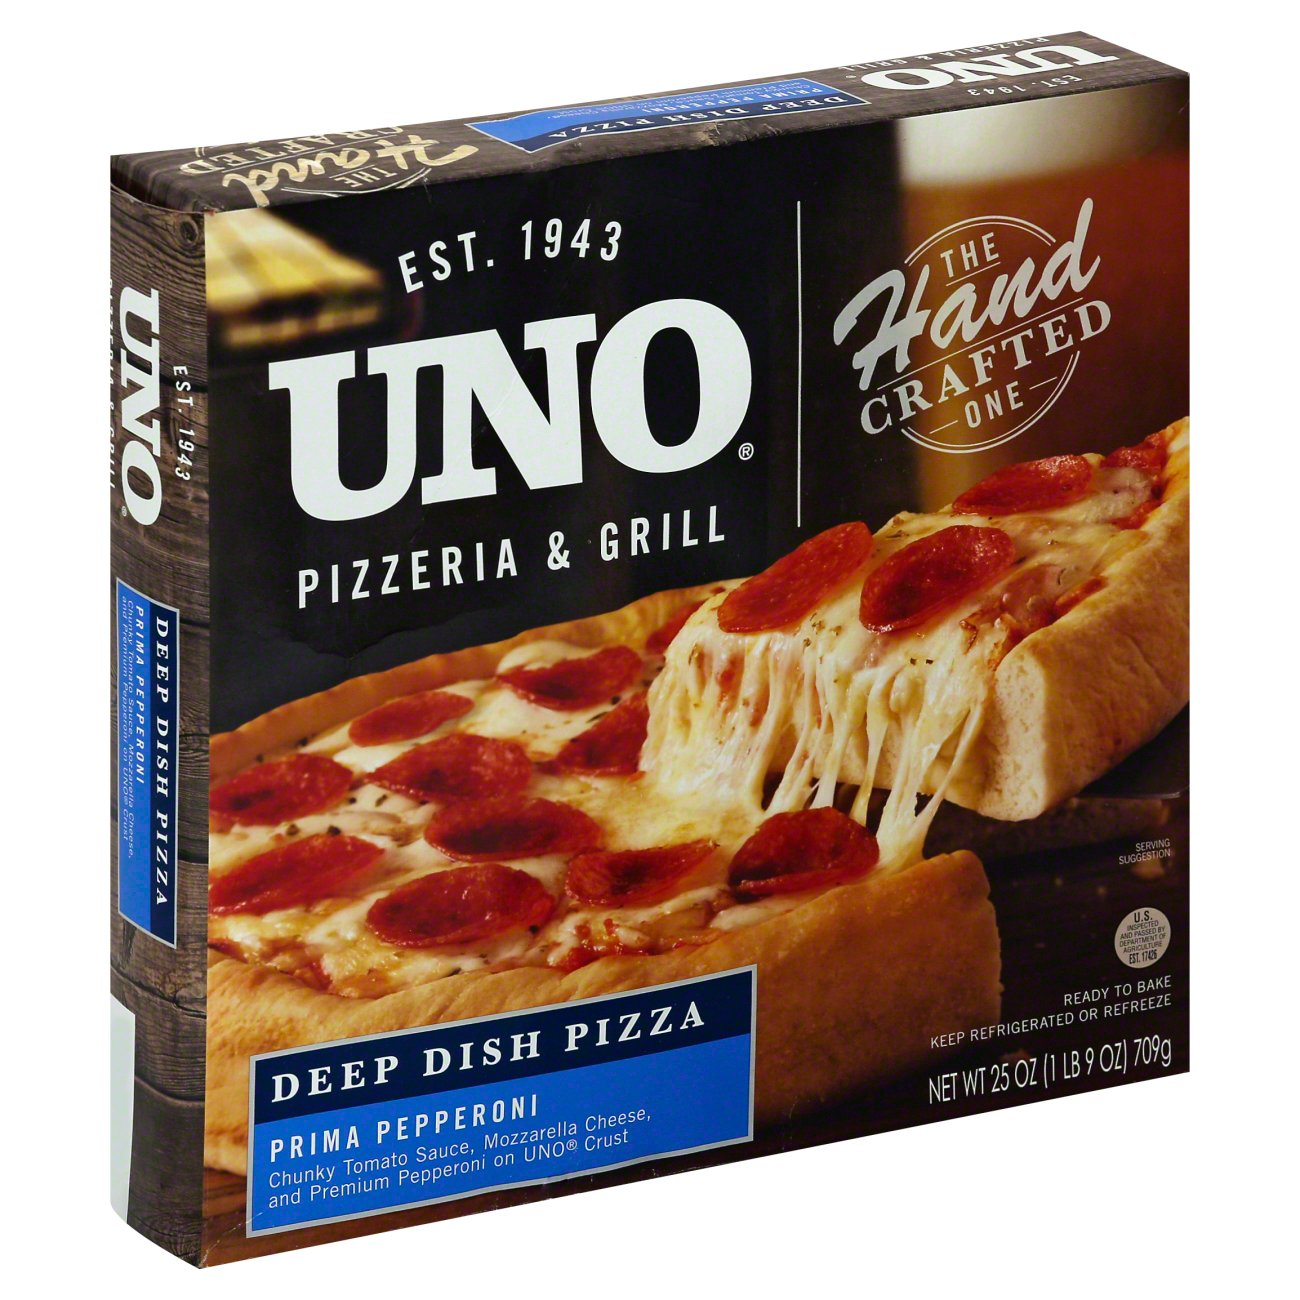 Uno Deep Dish Pepperoni Pizza